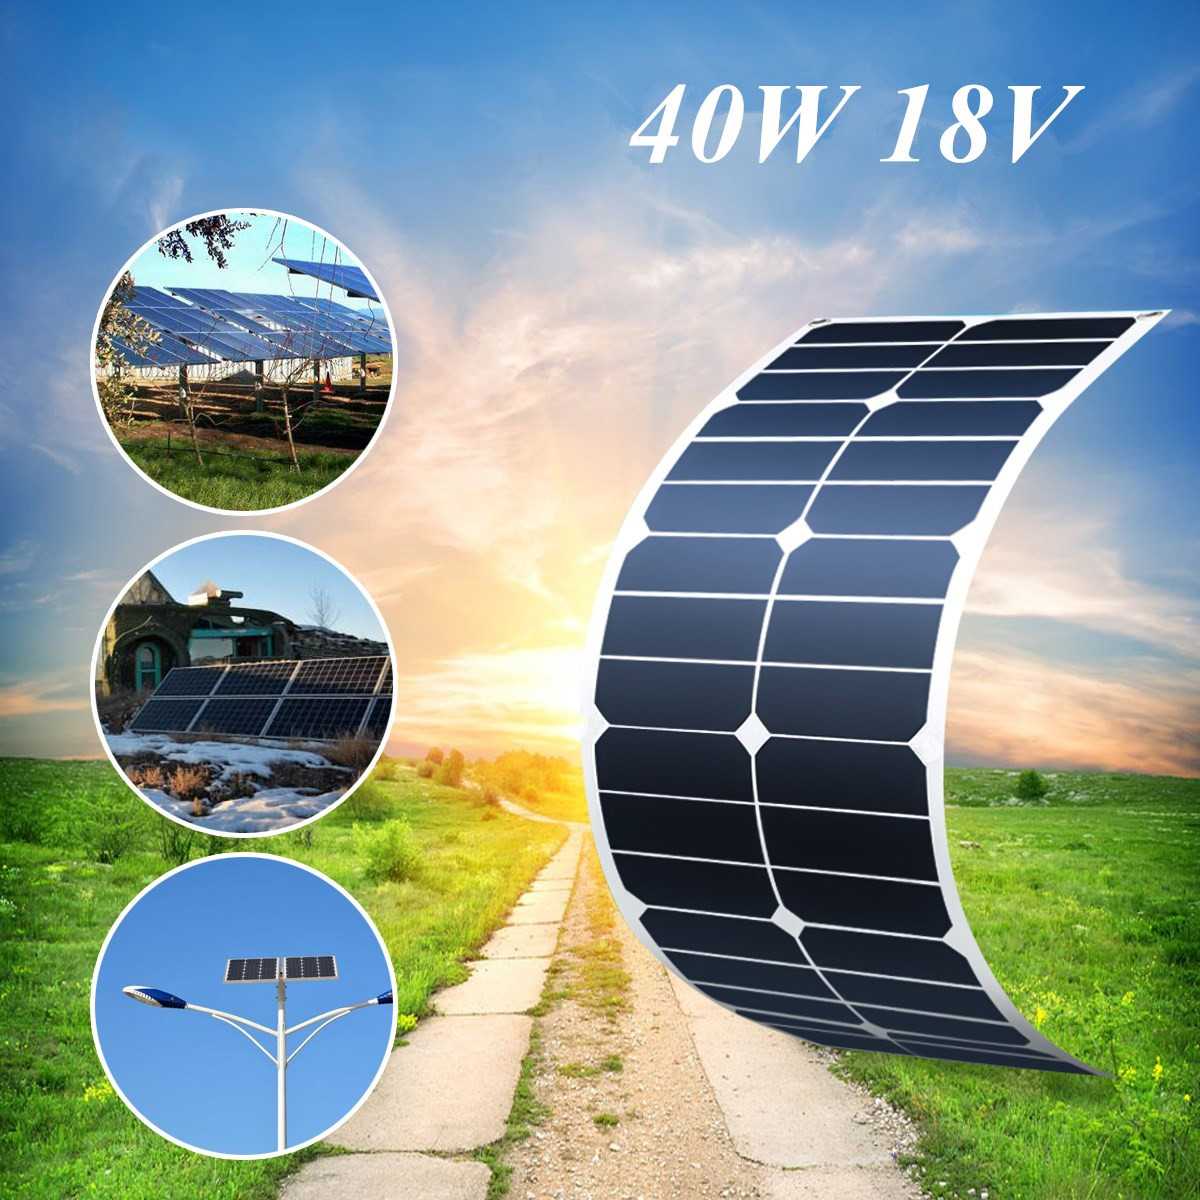 LEORY Flexible Solar Panel Plate 40W 18V Solar Charger For Car Battery 12V Sunpower Monocrystalline Silicon Cells Module Kit leory 12v 4 5w solar panel portable monocrystalline solar cells power charger diy module battery system for car automobile boat